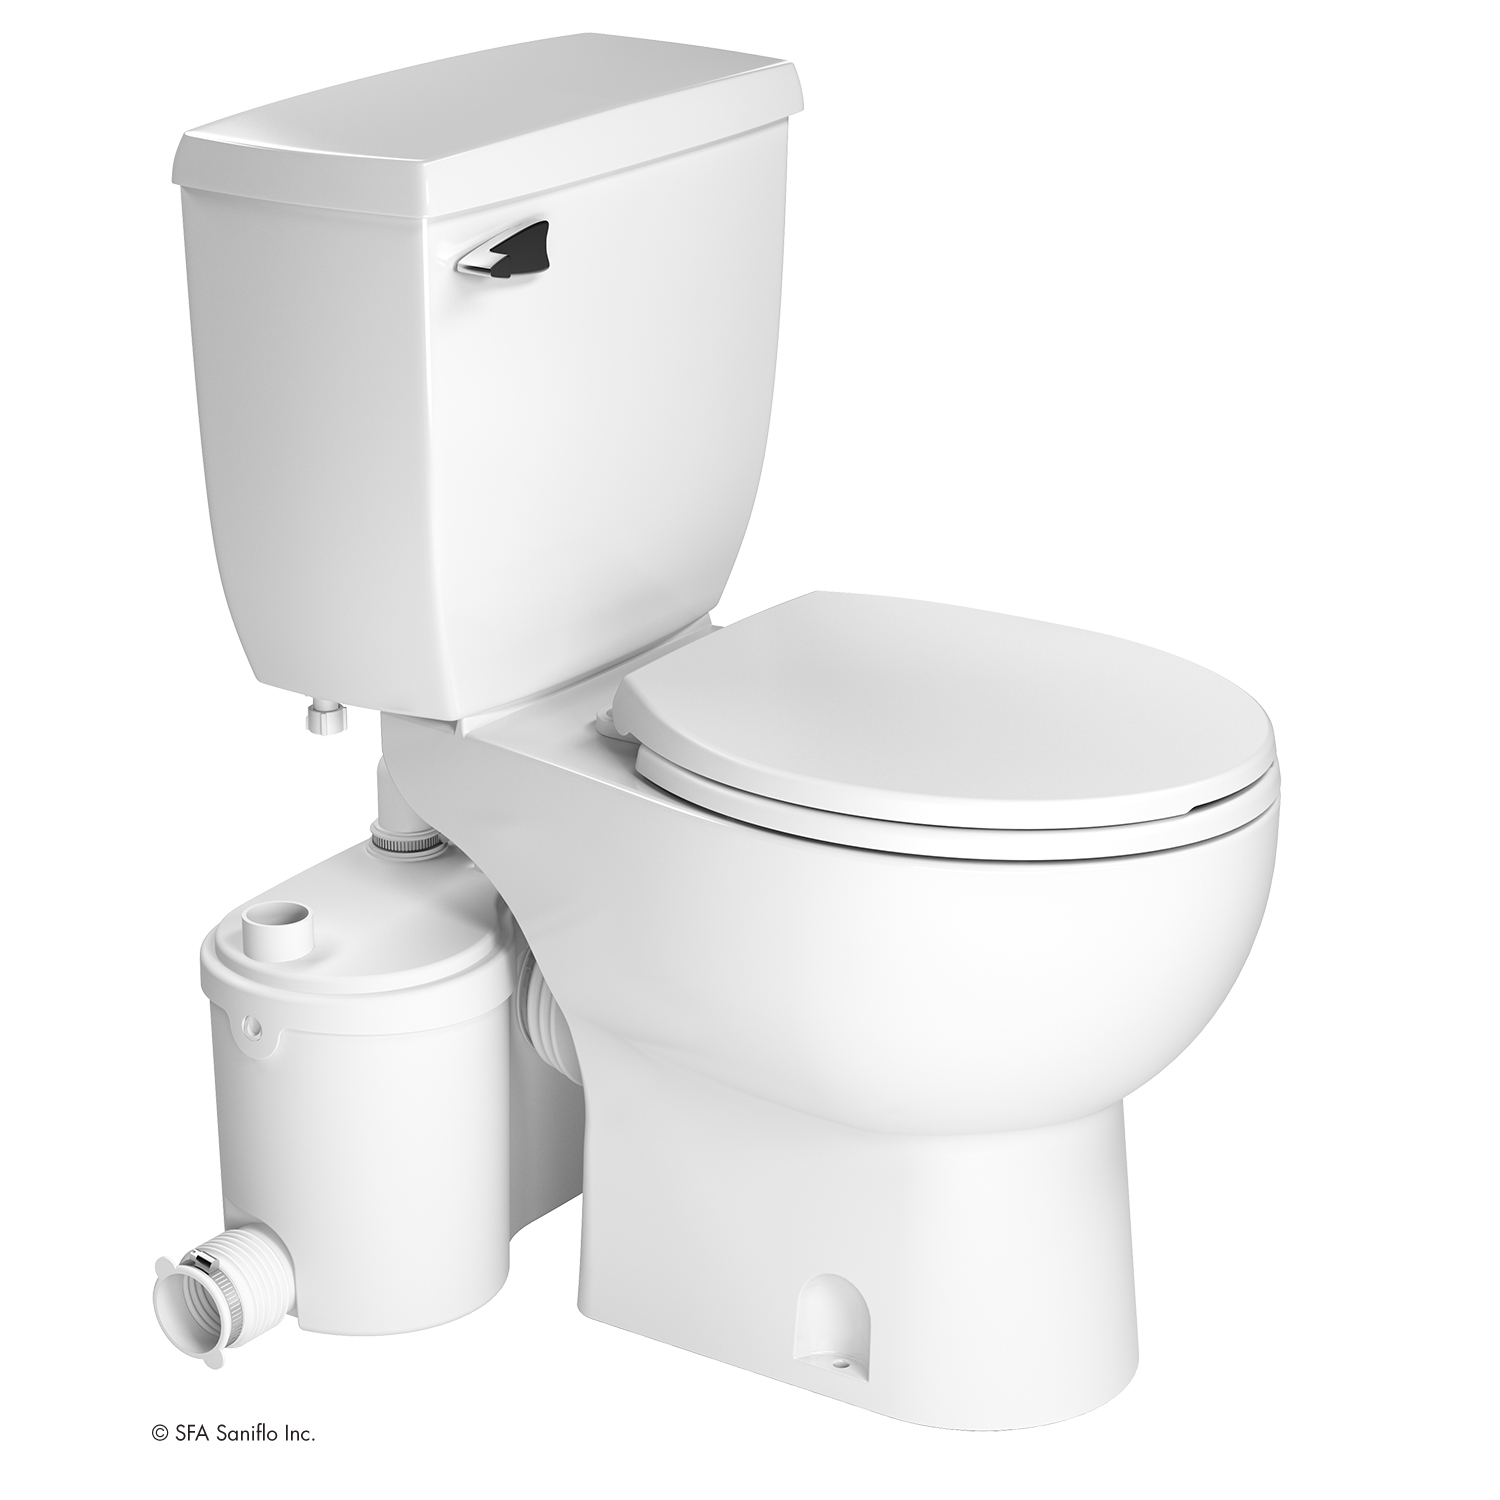 US3 Round bowl_tank_Sanibest Pro saniflo sanibest pro pump white round toilet  at eliteediting.co